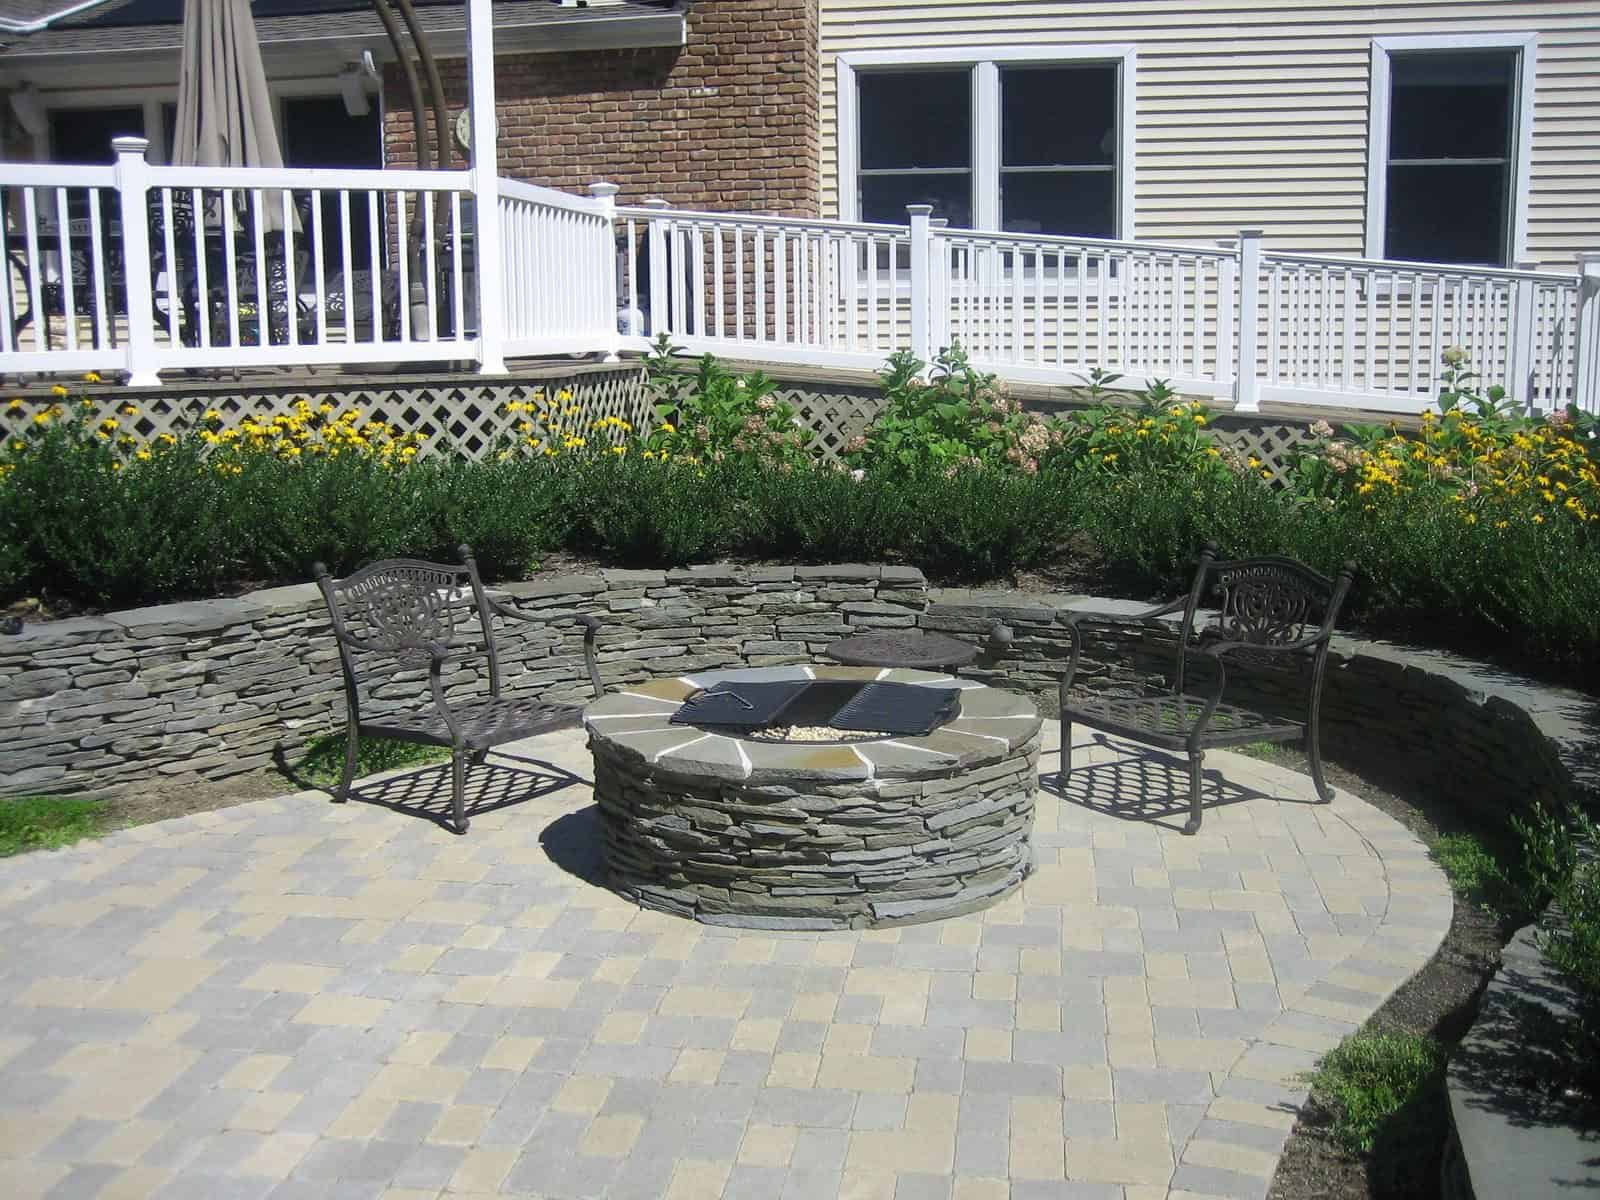 New York State stacked bluestone fire pit with fire retardant insert and grills - Dix Hills, Long Island NY